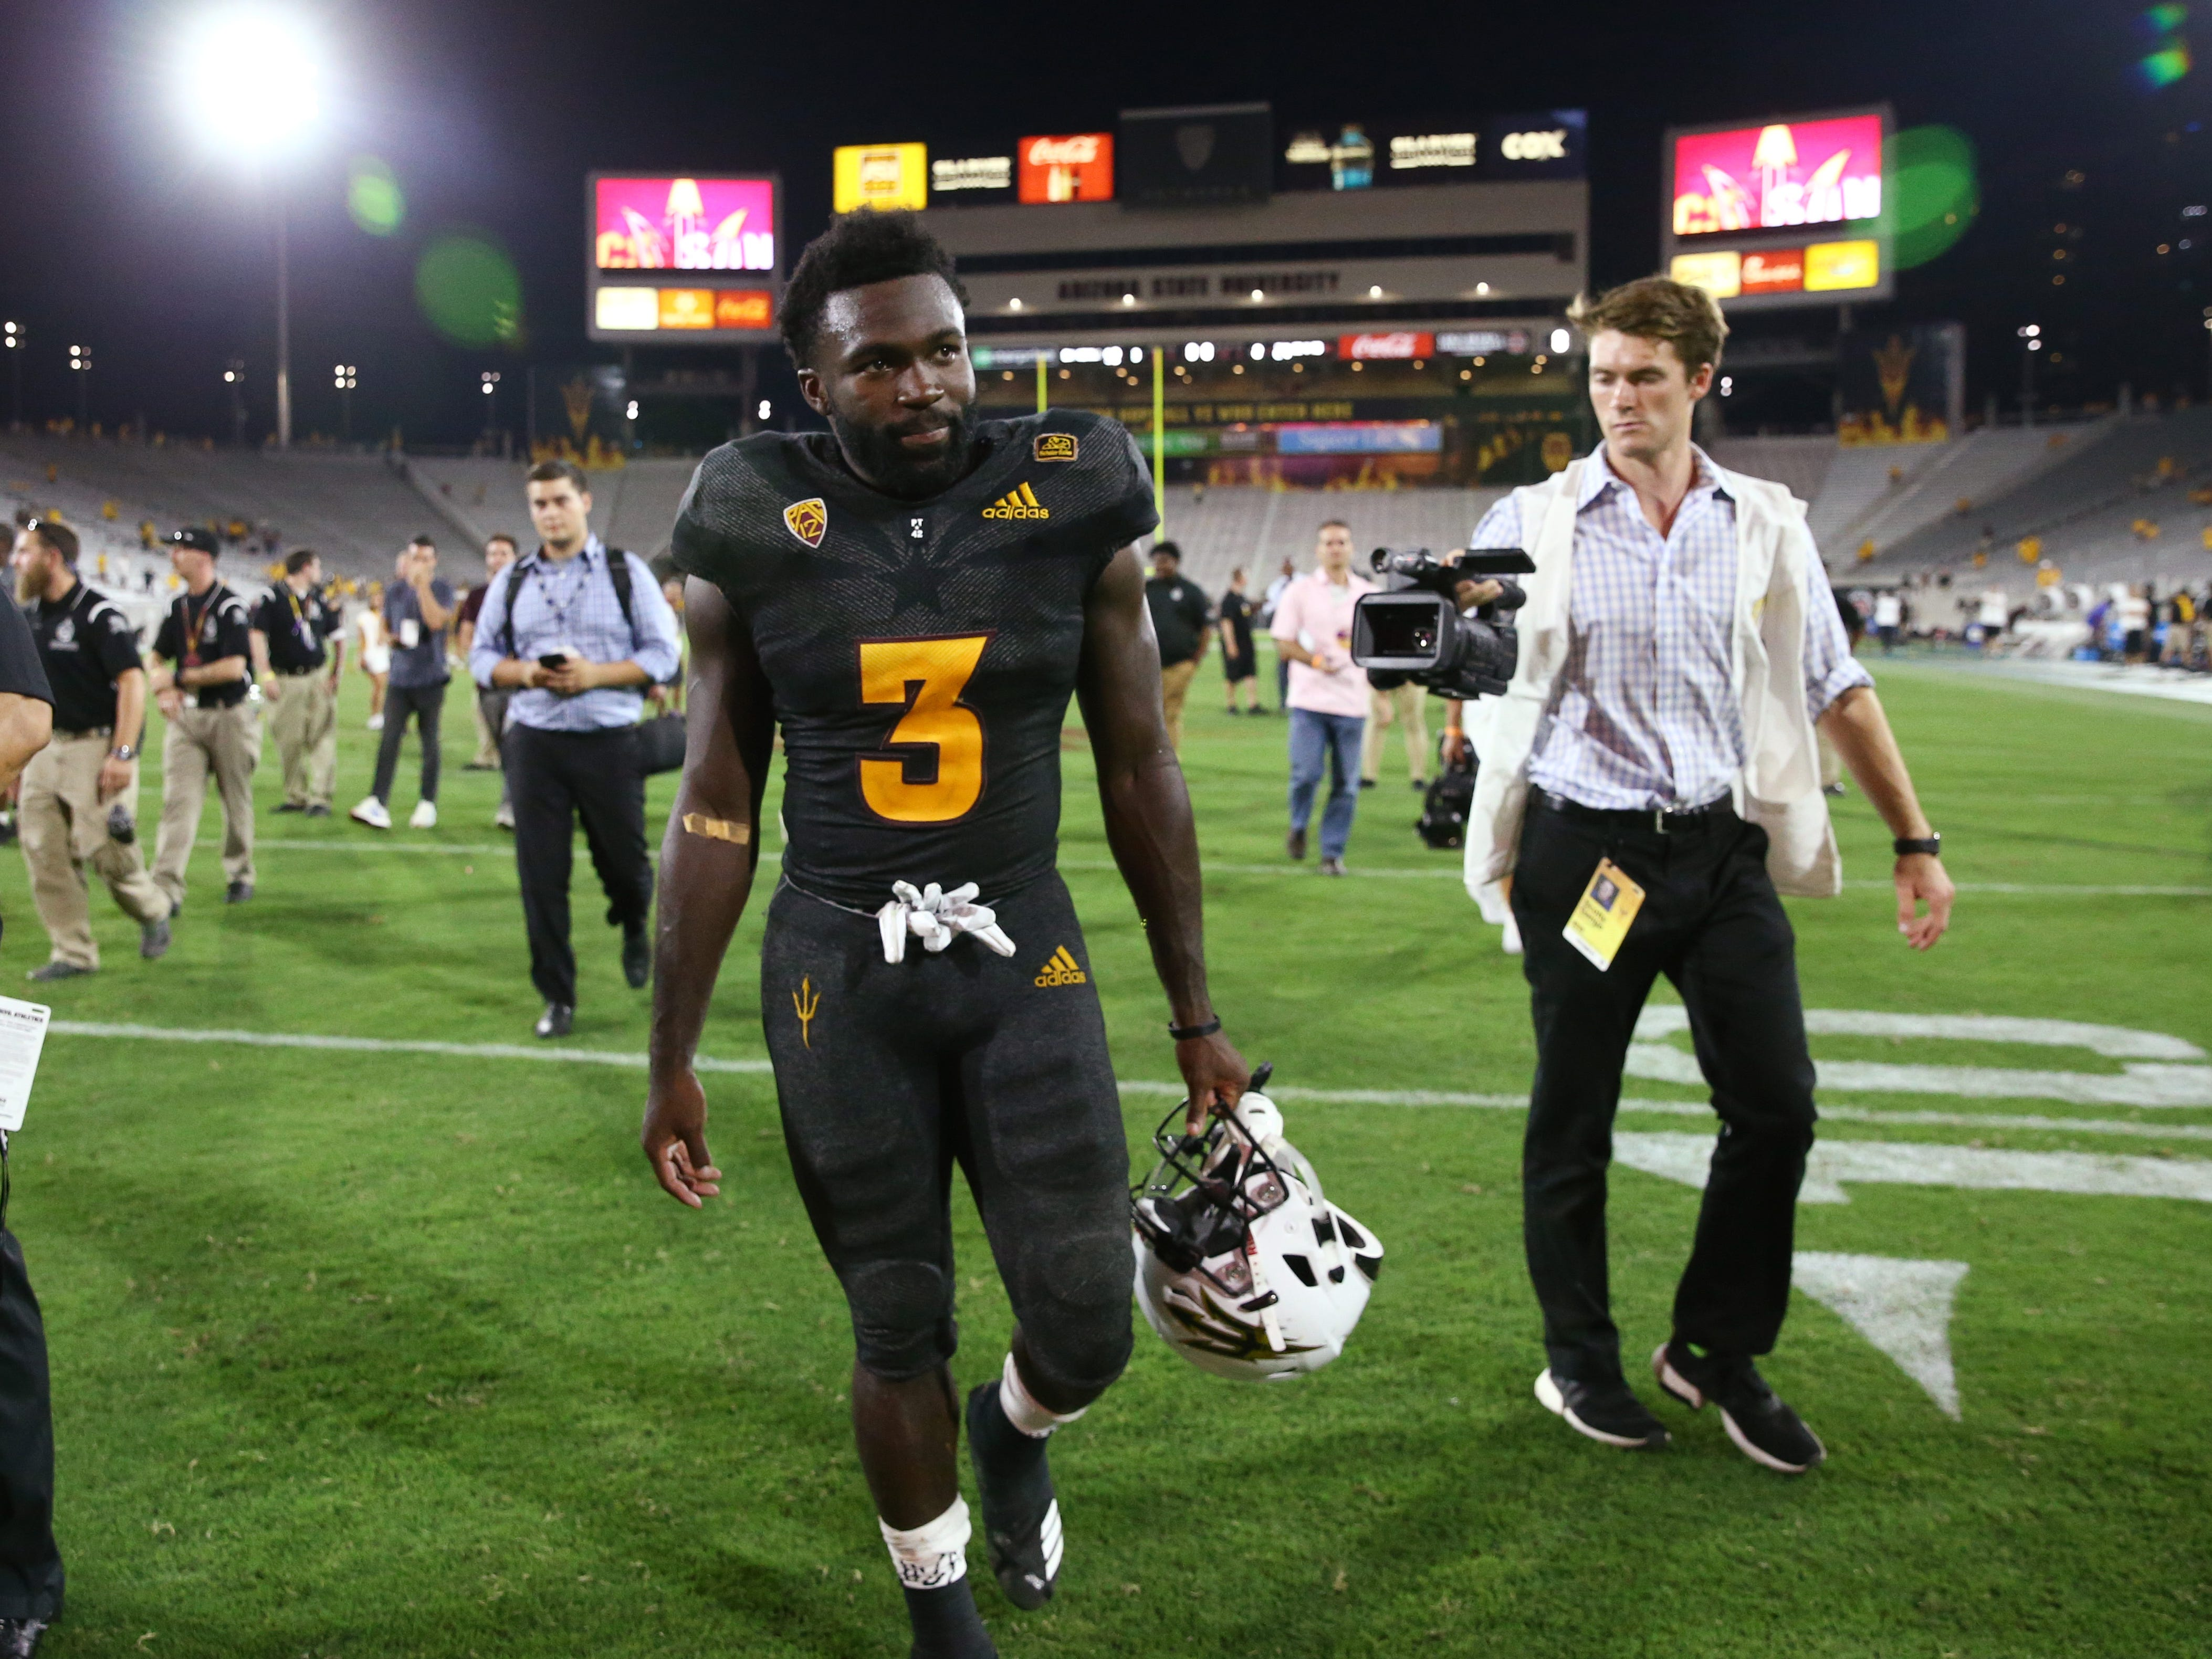 Arizona State running back Eno Benjamin after his 312-yard rushing game against Oregon State on Sep. 29, 2018, at Sun Devil Stadium.